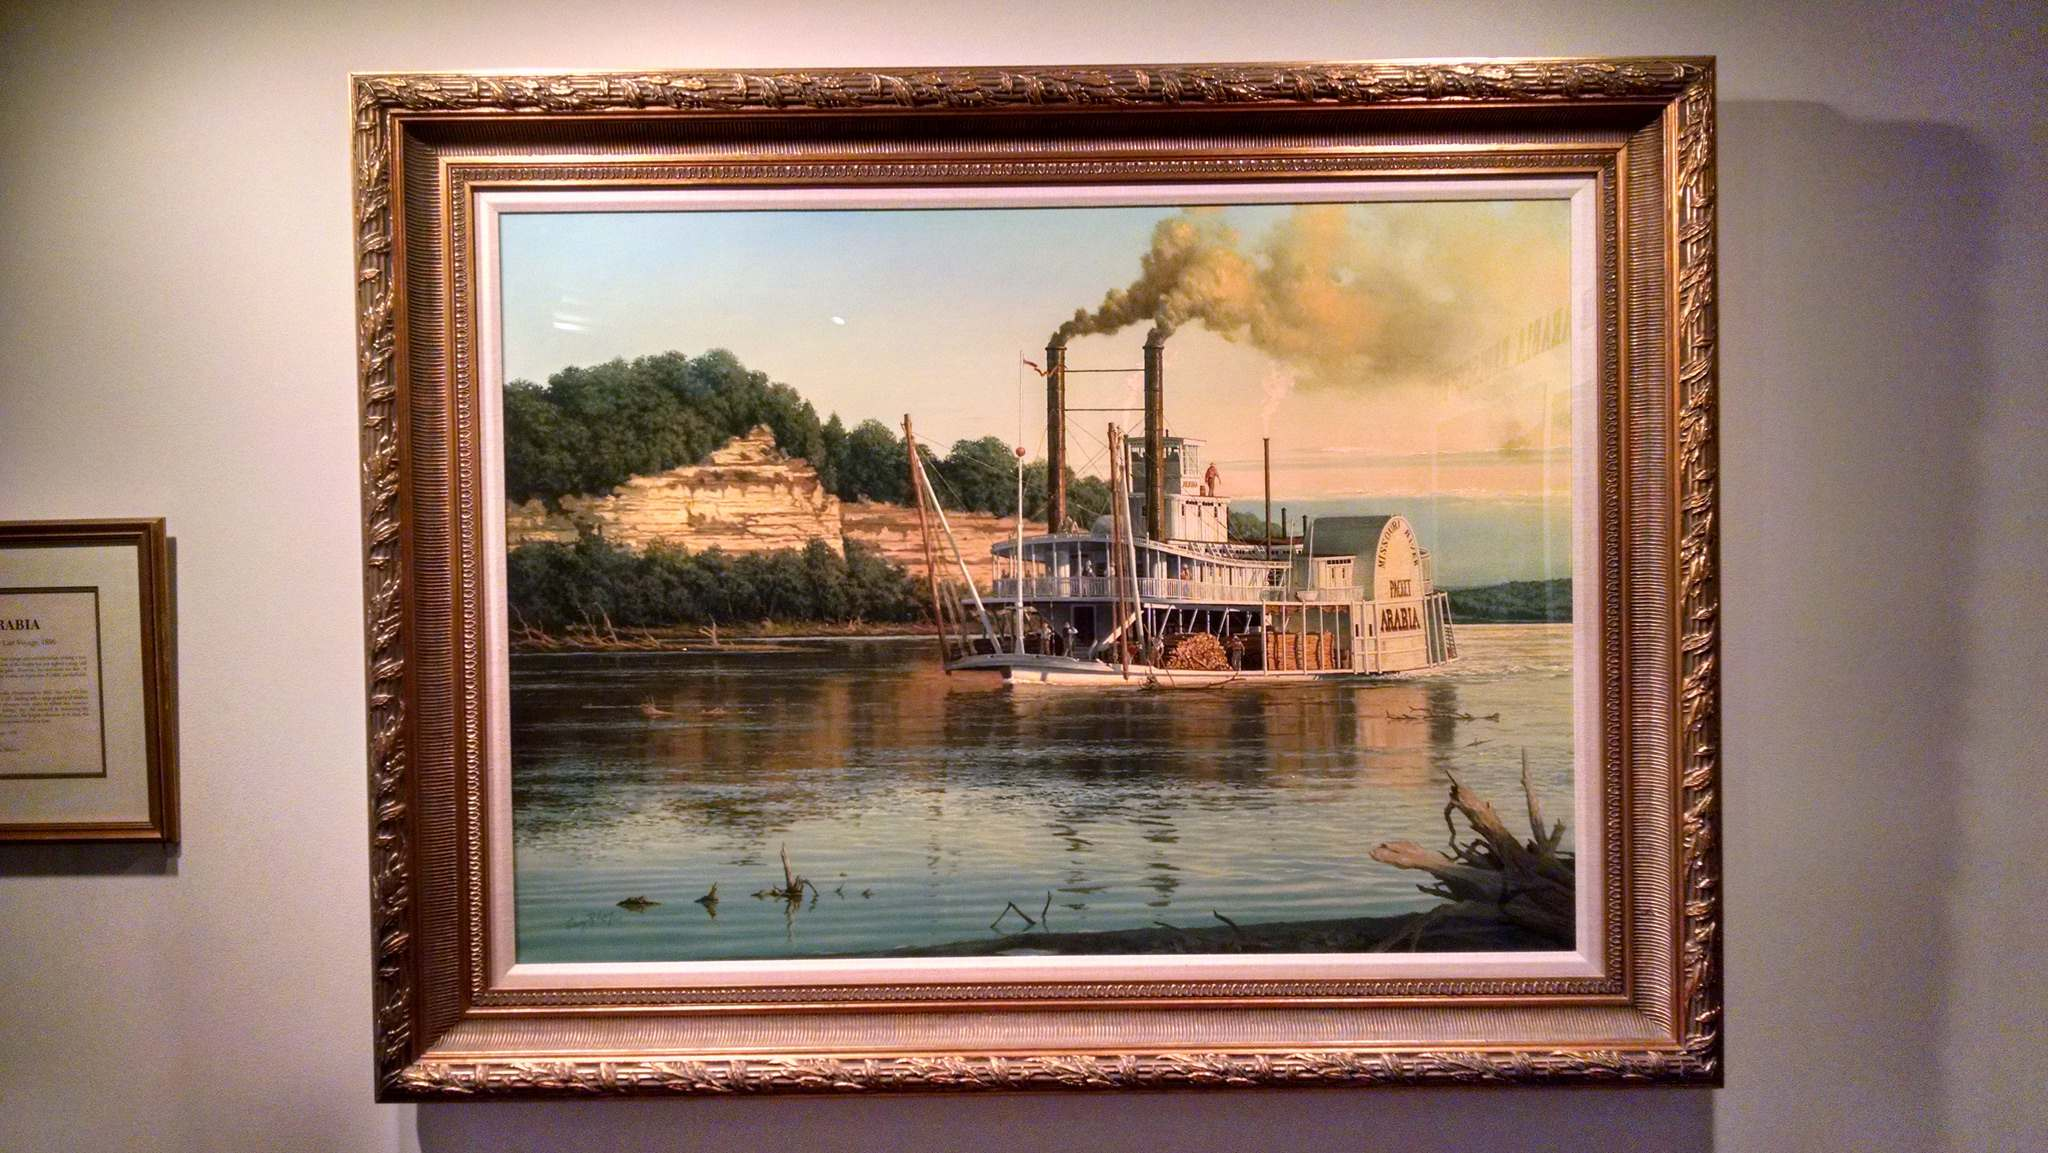 steamboat arabia History of Pioneering Midwest   Steamboat Arabia Museum in Kansas City